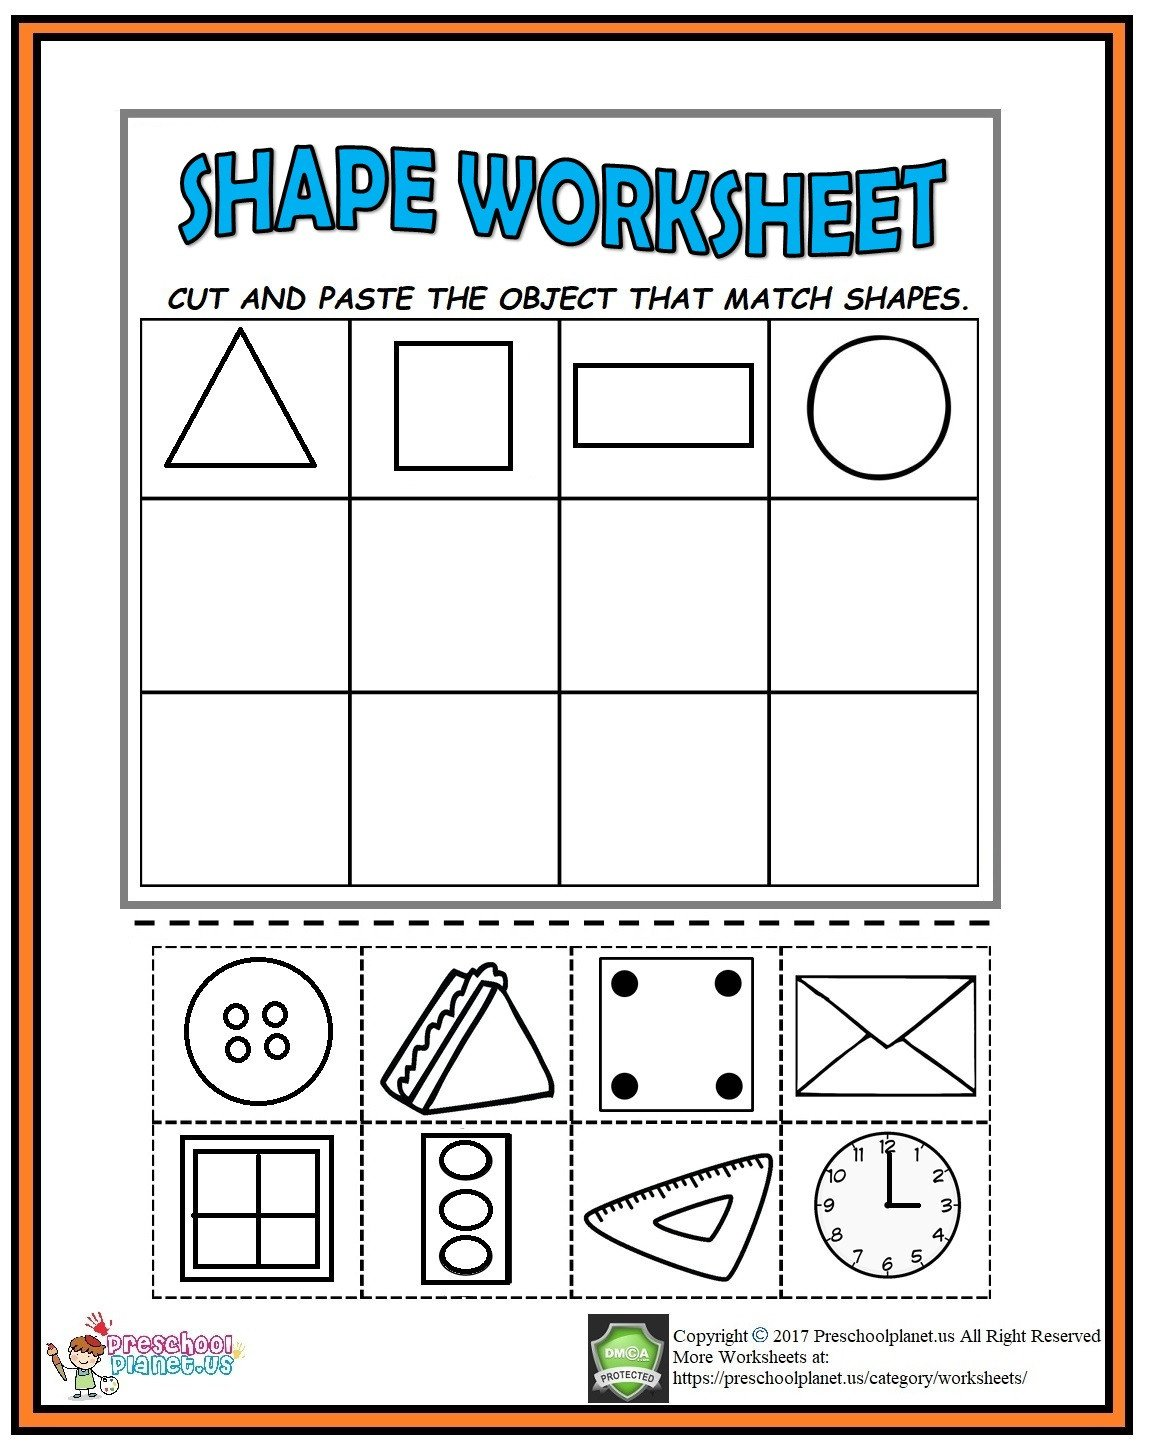 Free Cut and Paste Worksheets Cut and Paste Shape Worksheet – Preschoolplanet